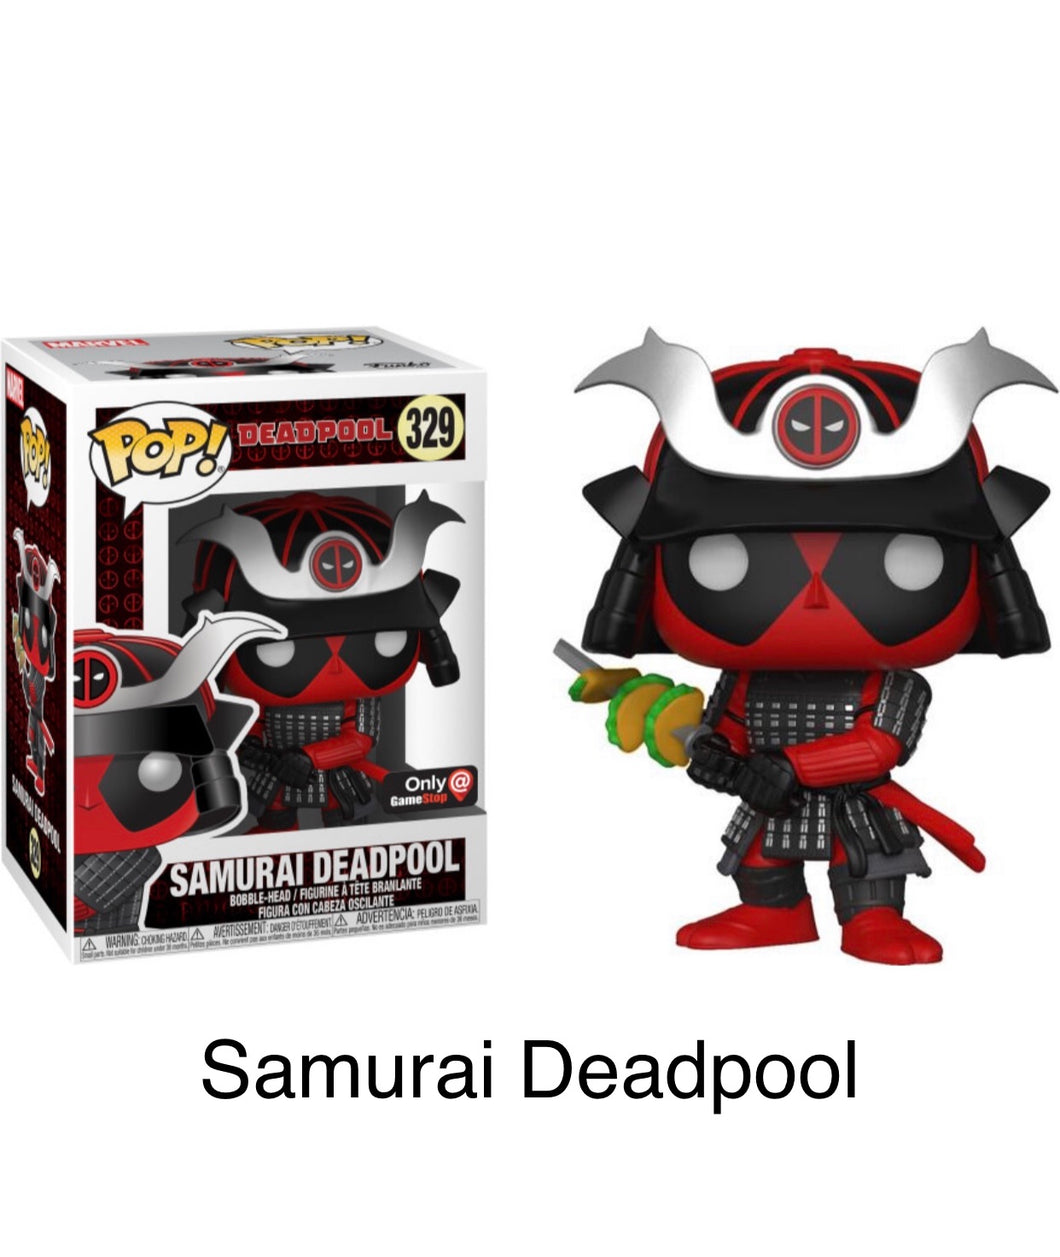 Samurai Deadpool